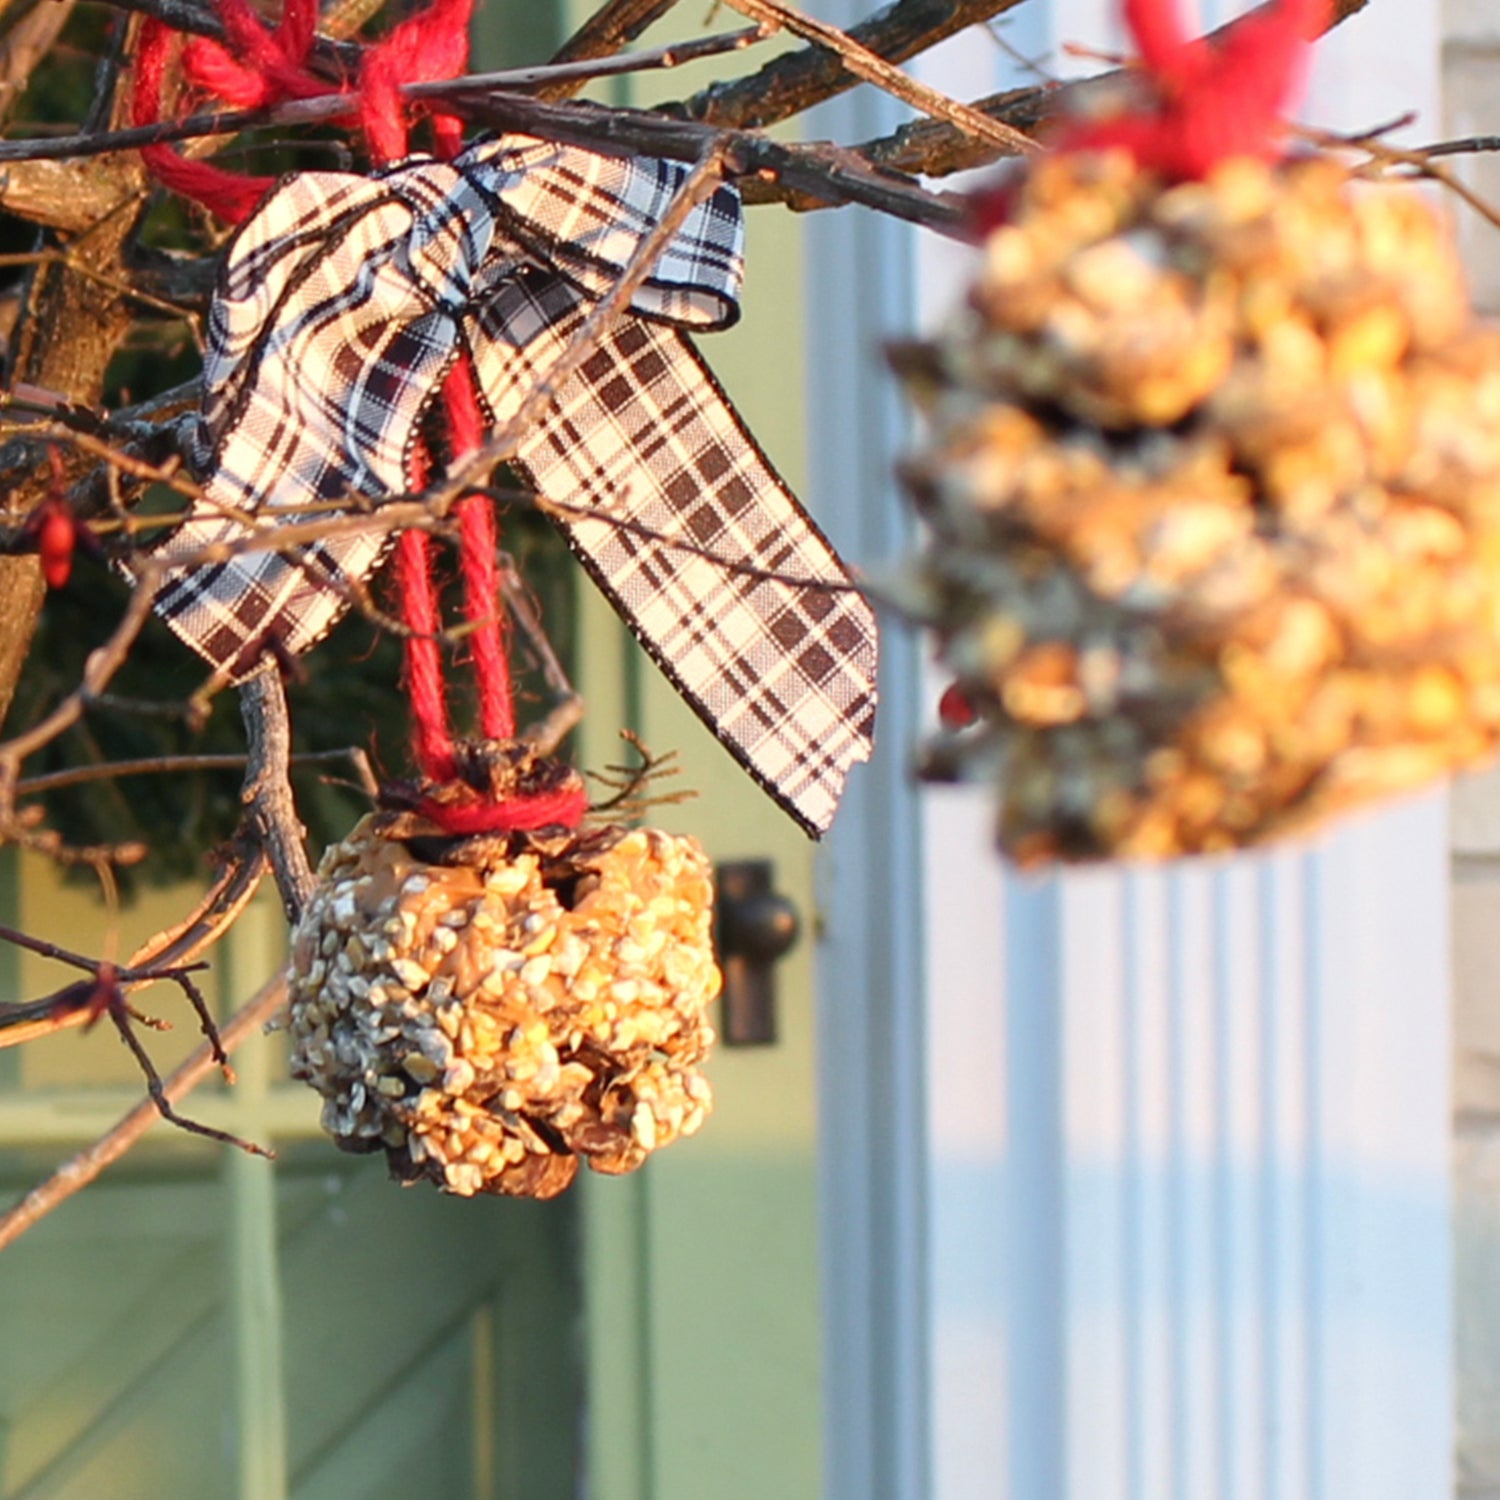 DIY Holiday Bird Feeder